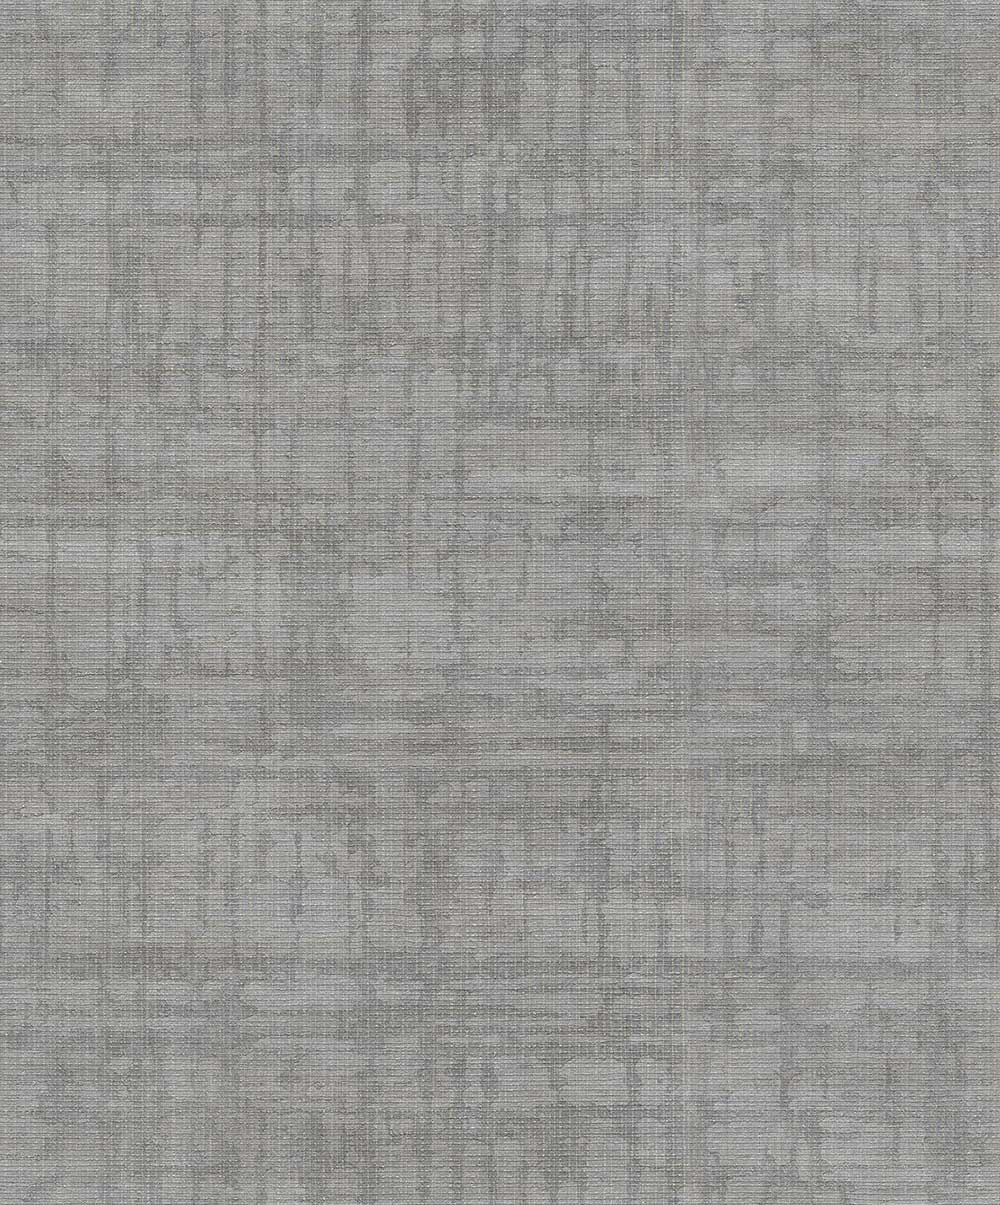 Albany Grid Dark Grey Wallpaper - Product code: C88630